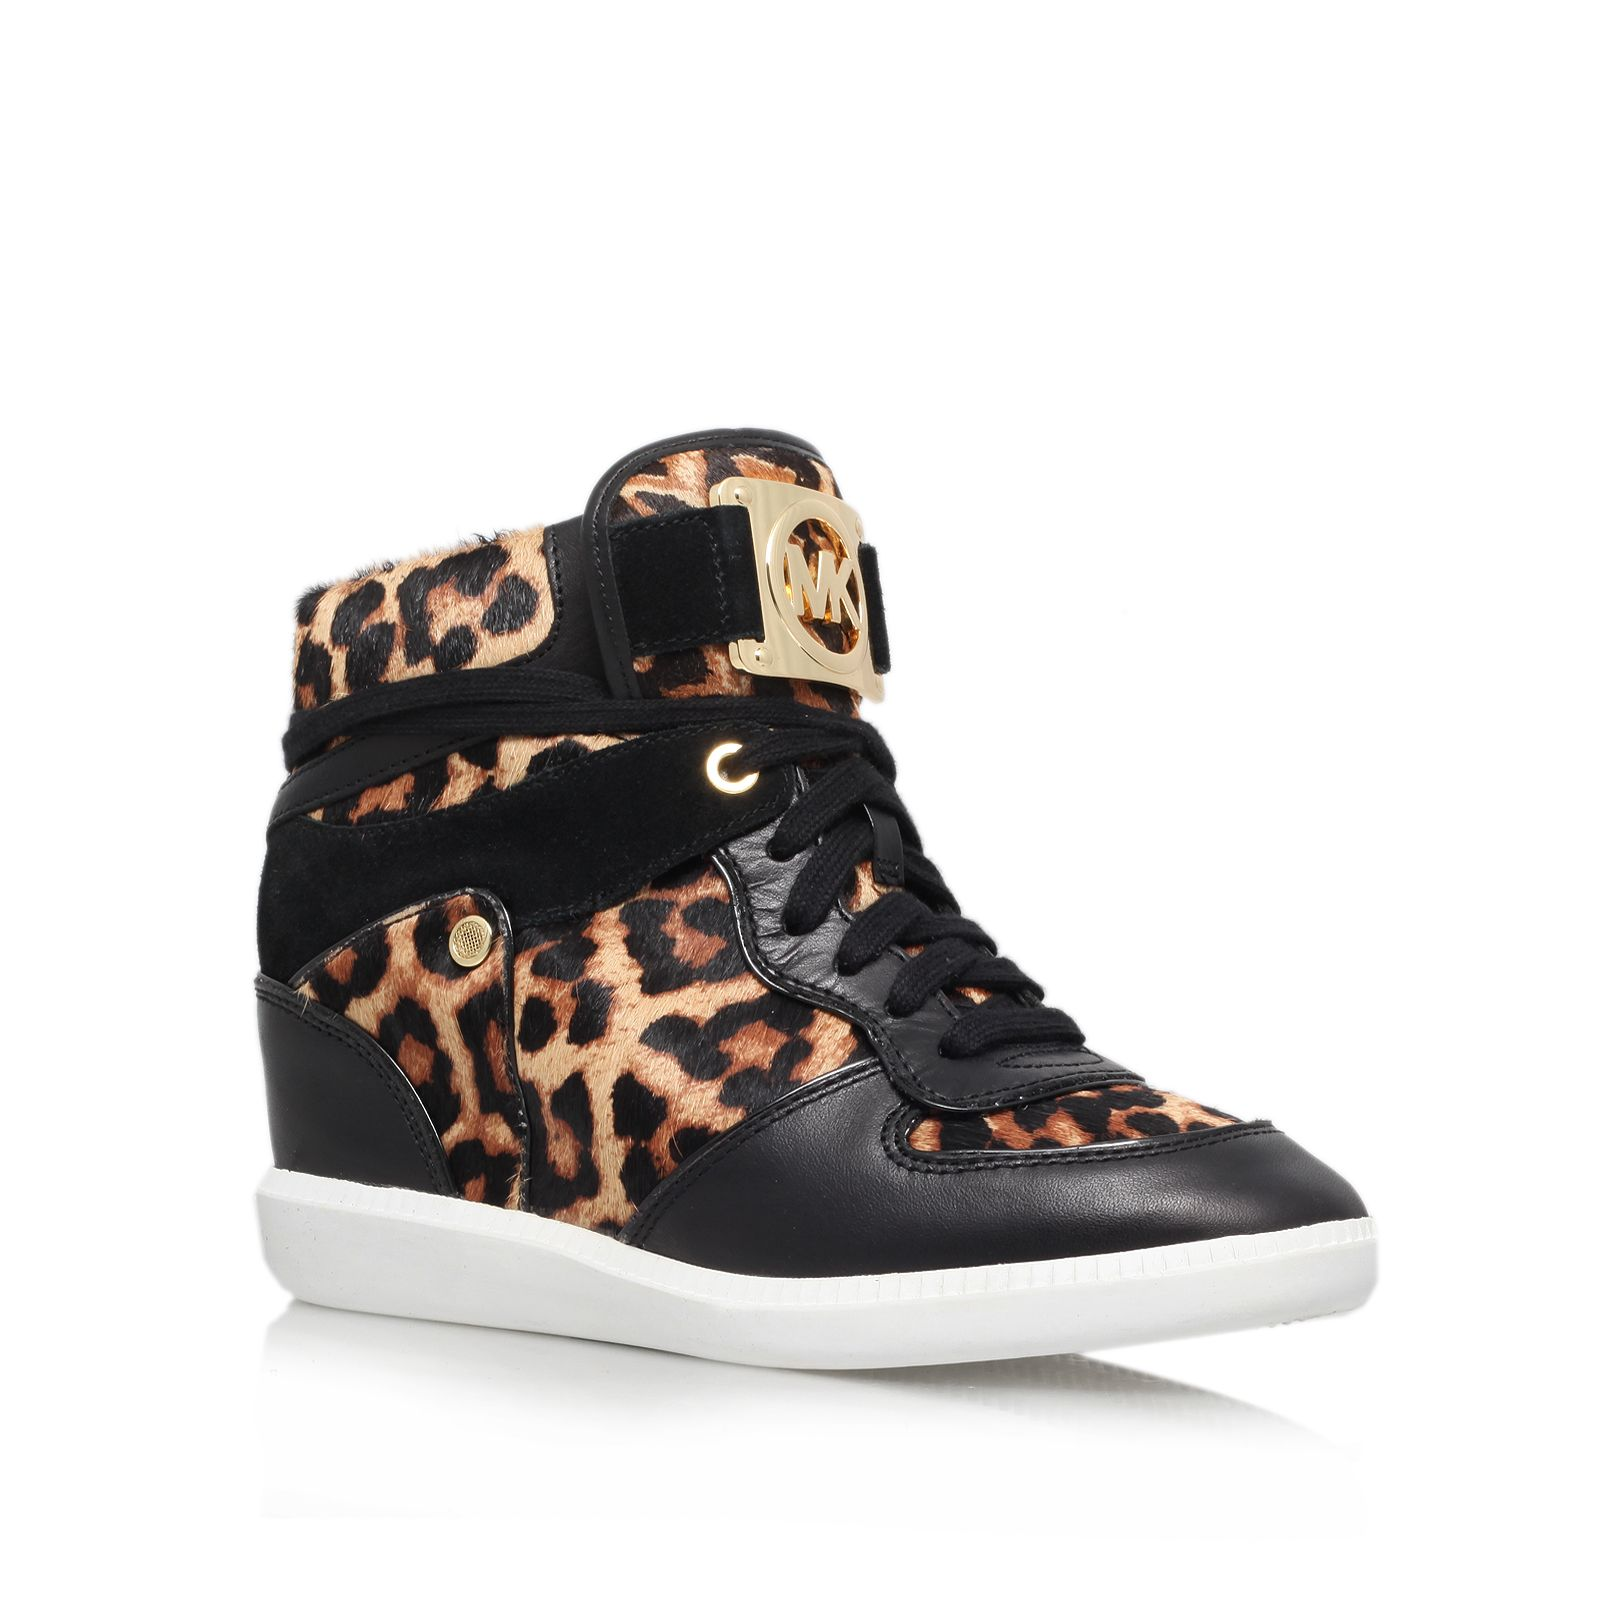 Nikko high top trainers